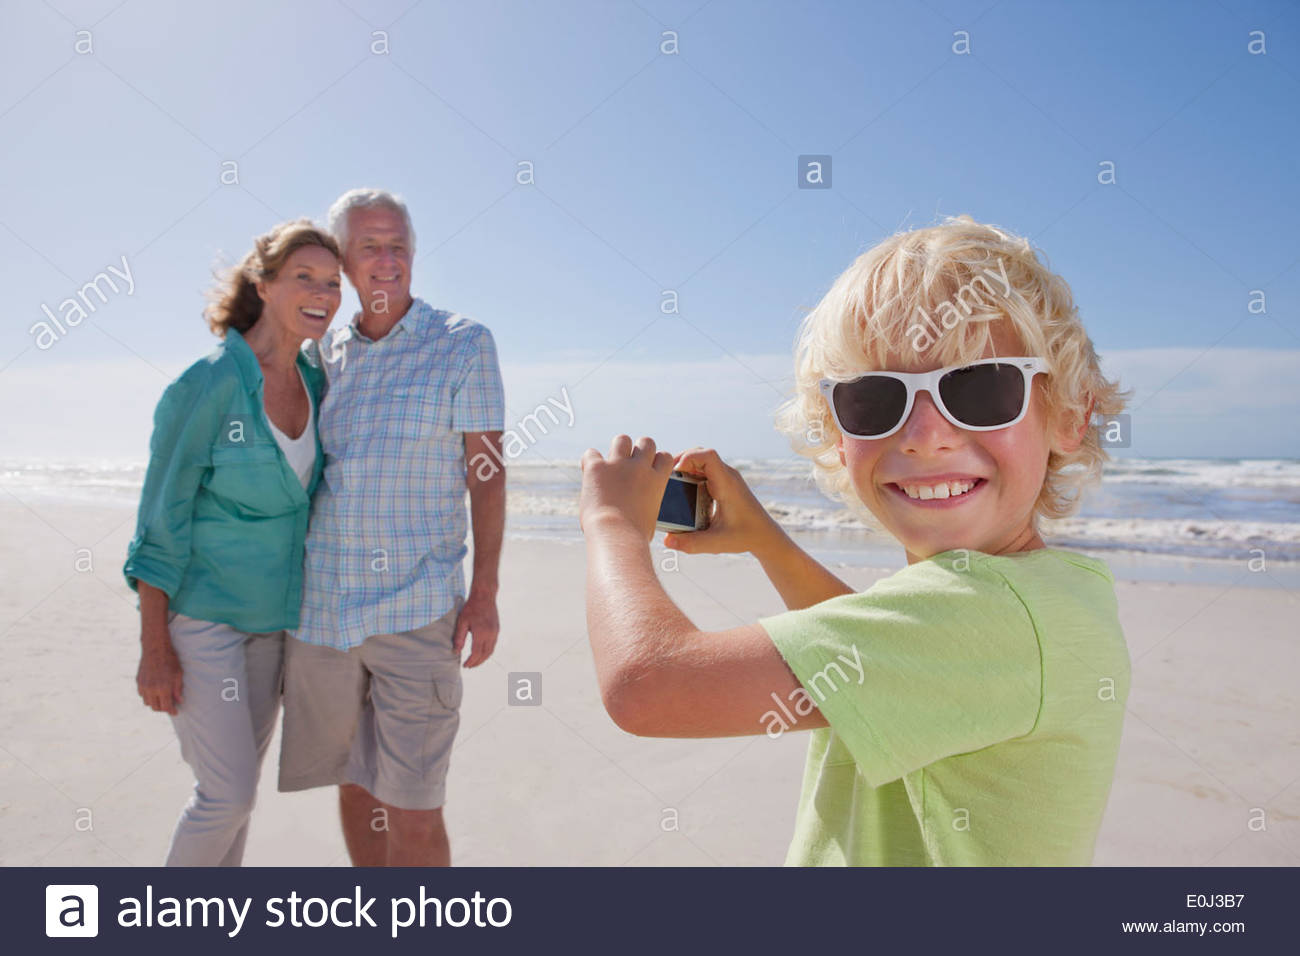 Portrait of smiling grandson with digital camera photographing grandparents on sunny beach - Stock Image